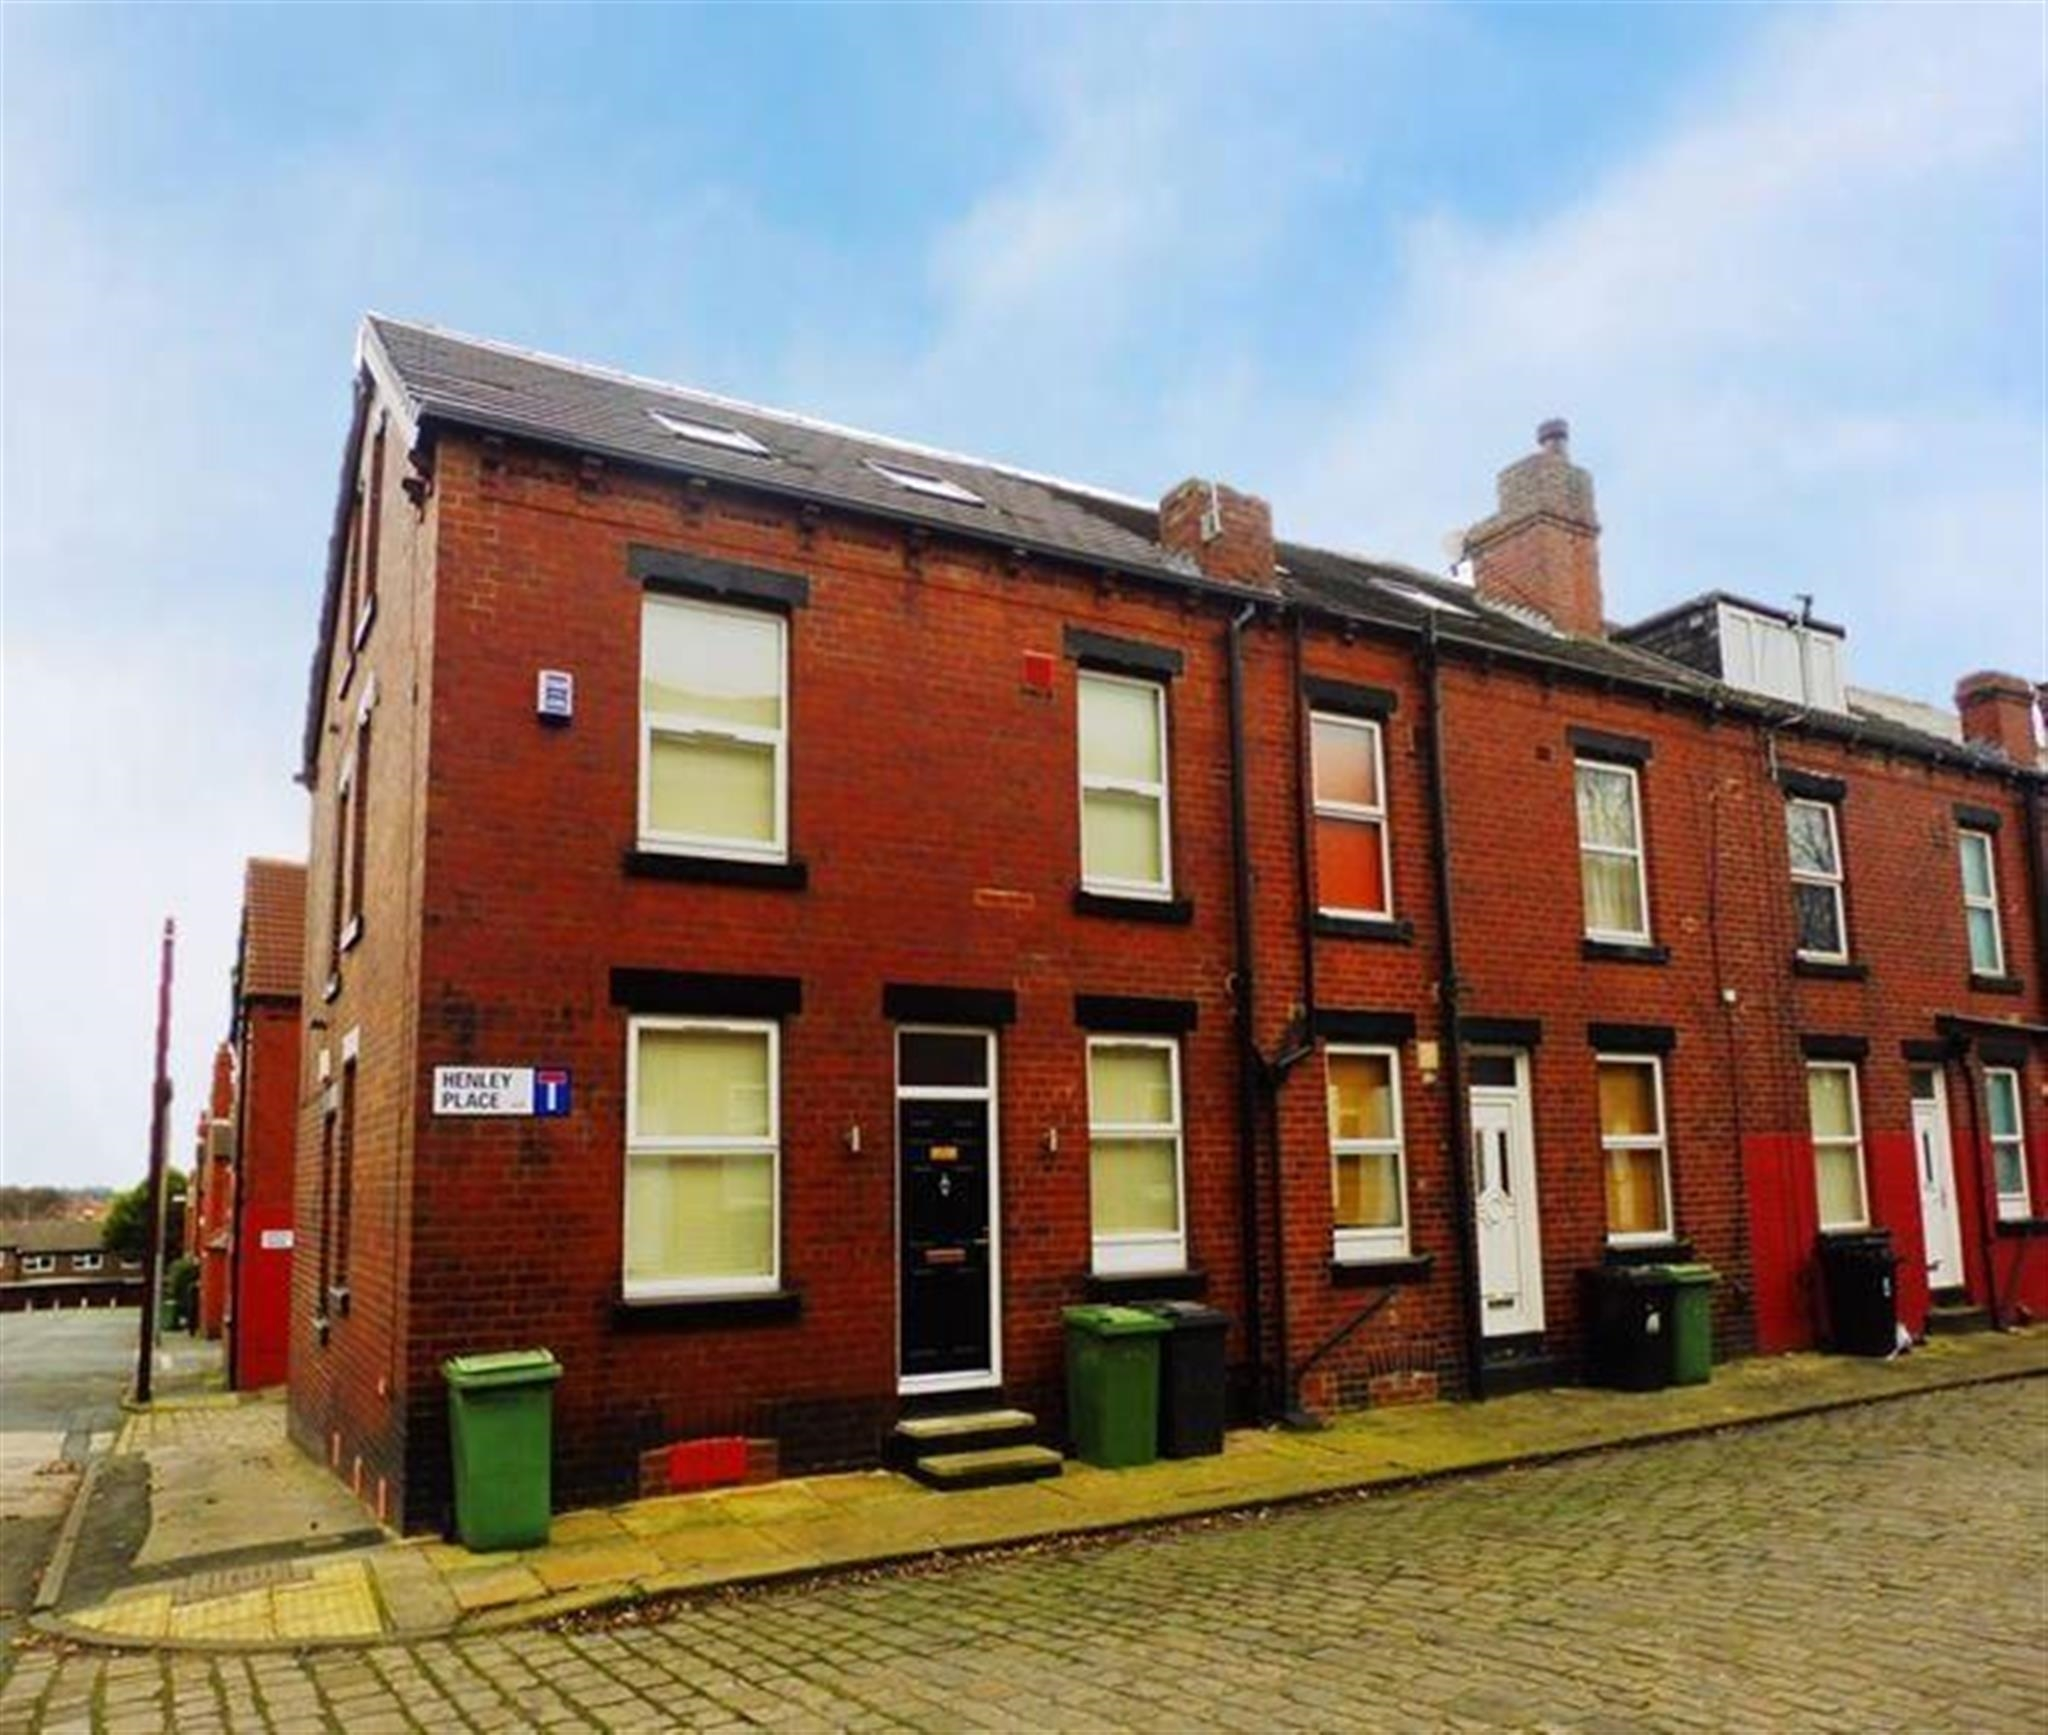 I Need A Place To Rent: 2 Bedroom House To Rent, Henley Place, Leeds, LS13 3AP